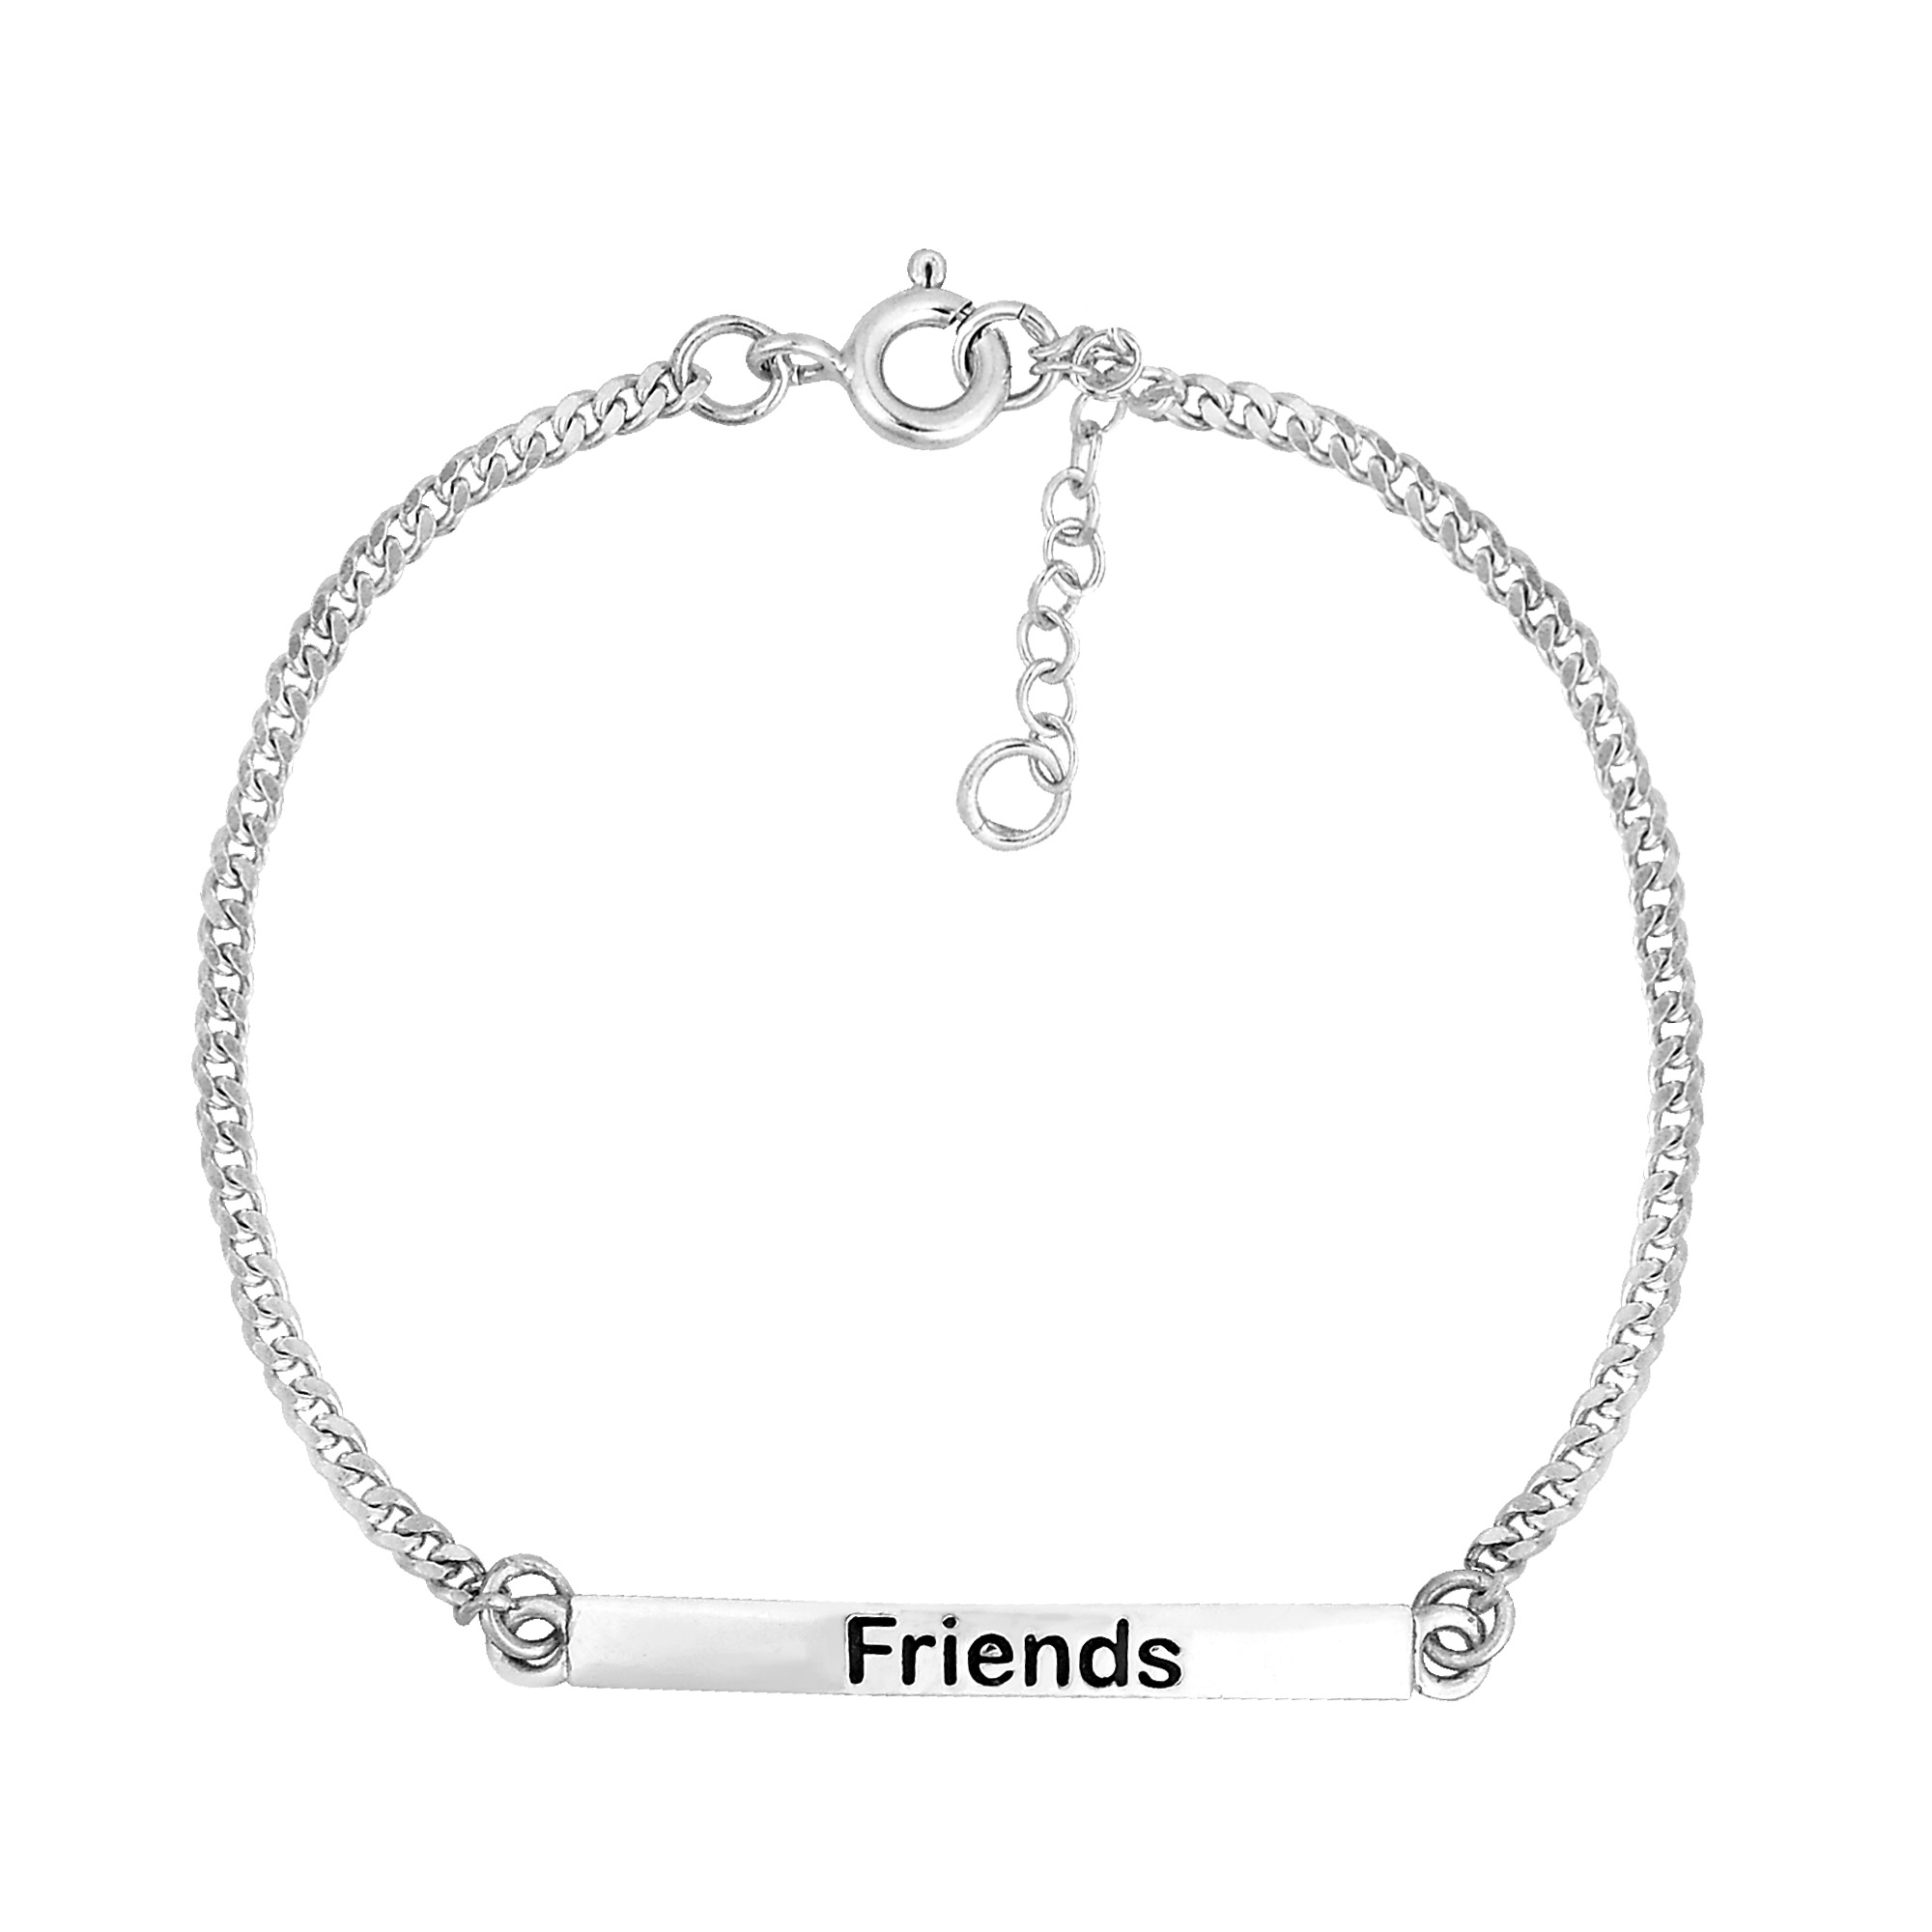 Friends Bar Sterling Silver Chain Friendship Bracelet